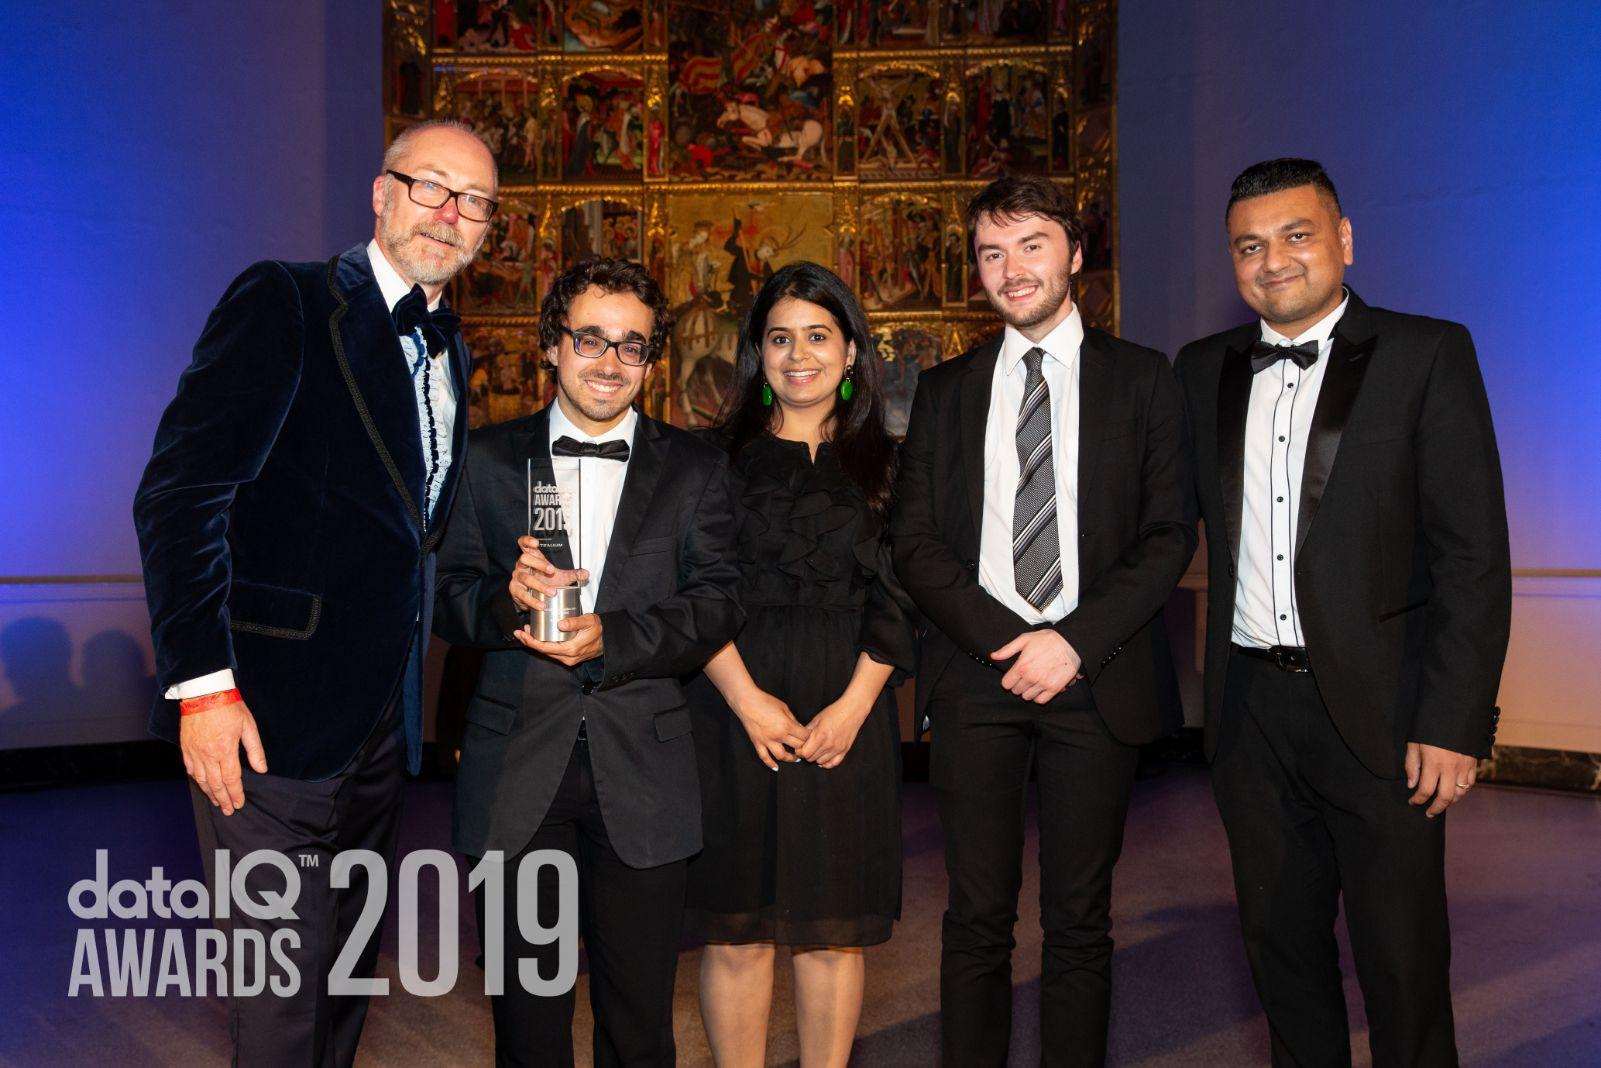 Awards 2019 Image 84